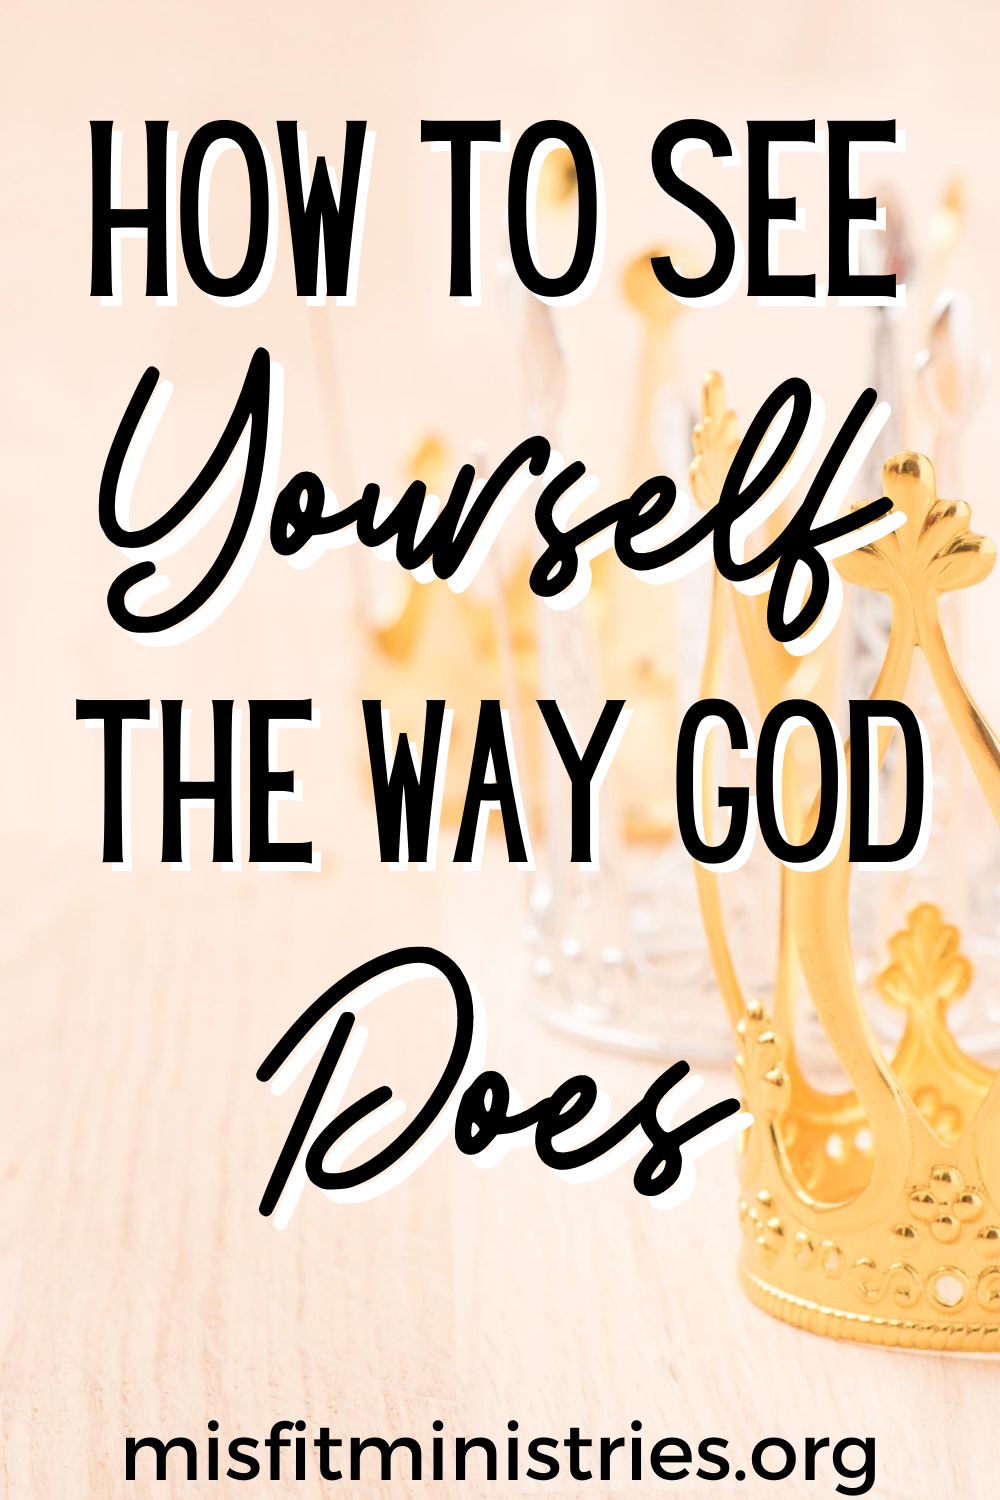 How To See Yourself The Way God Does